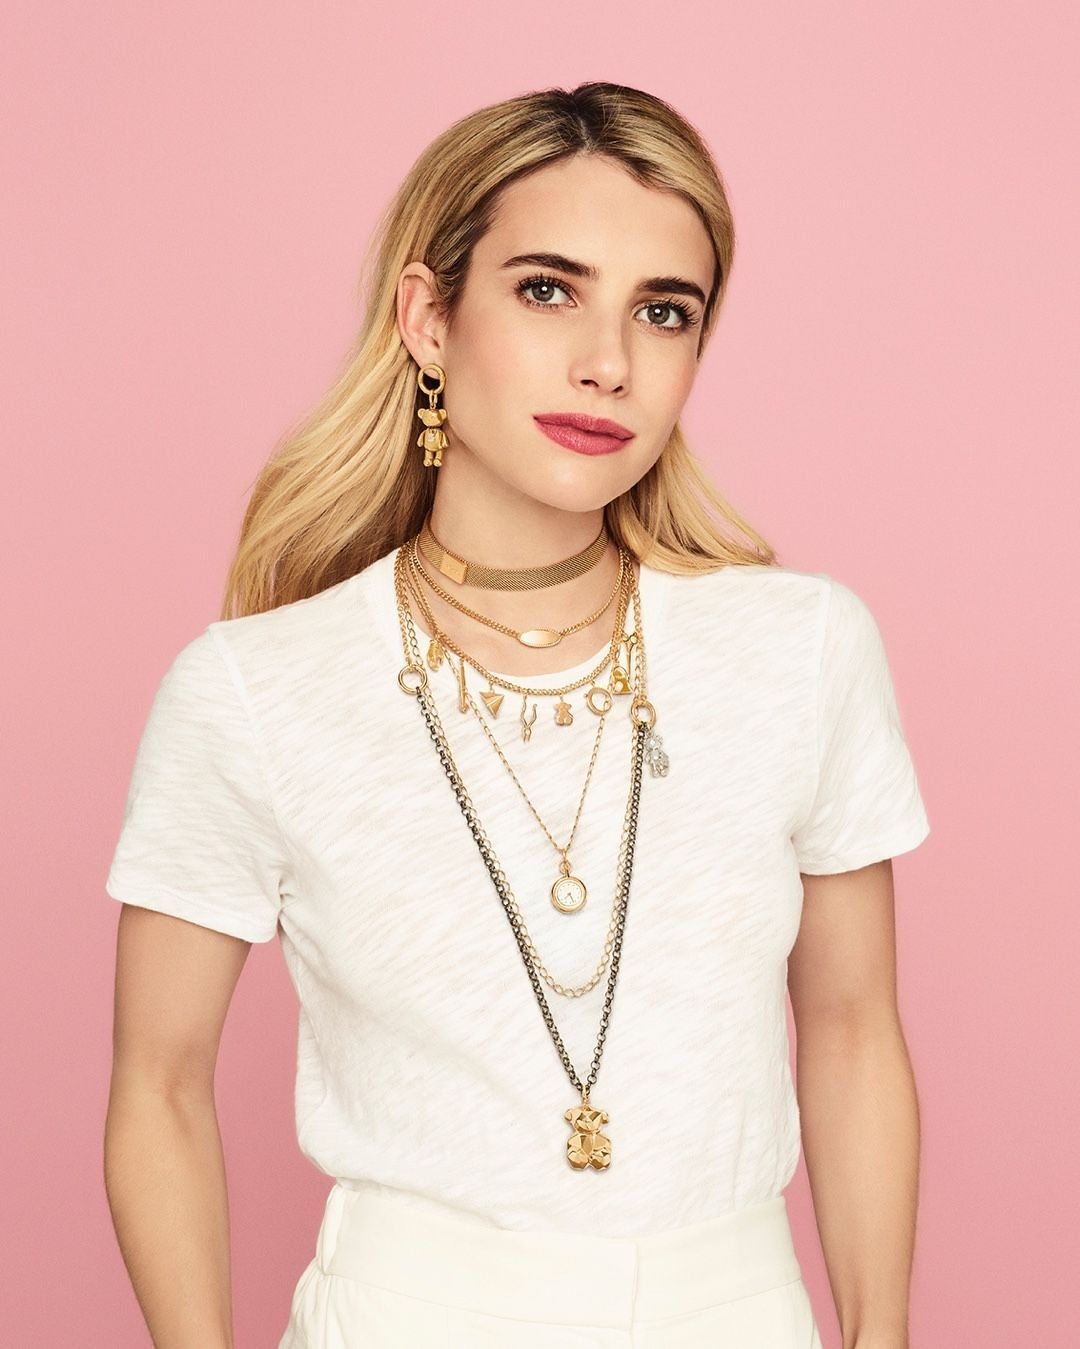 Catalog Brand Tous Emma Roberts Fall Winter 2019 Collection New